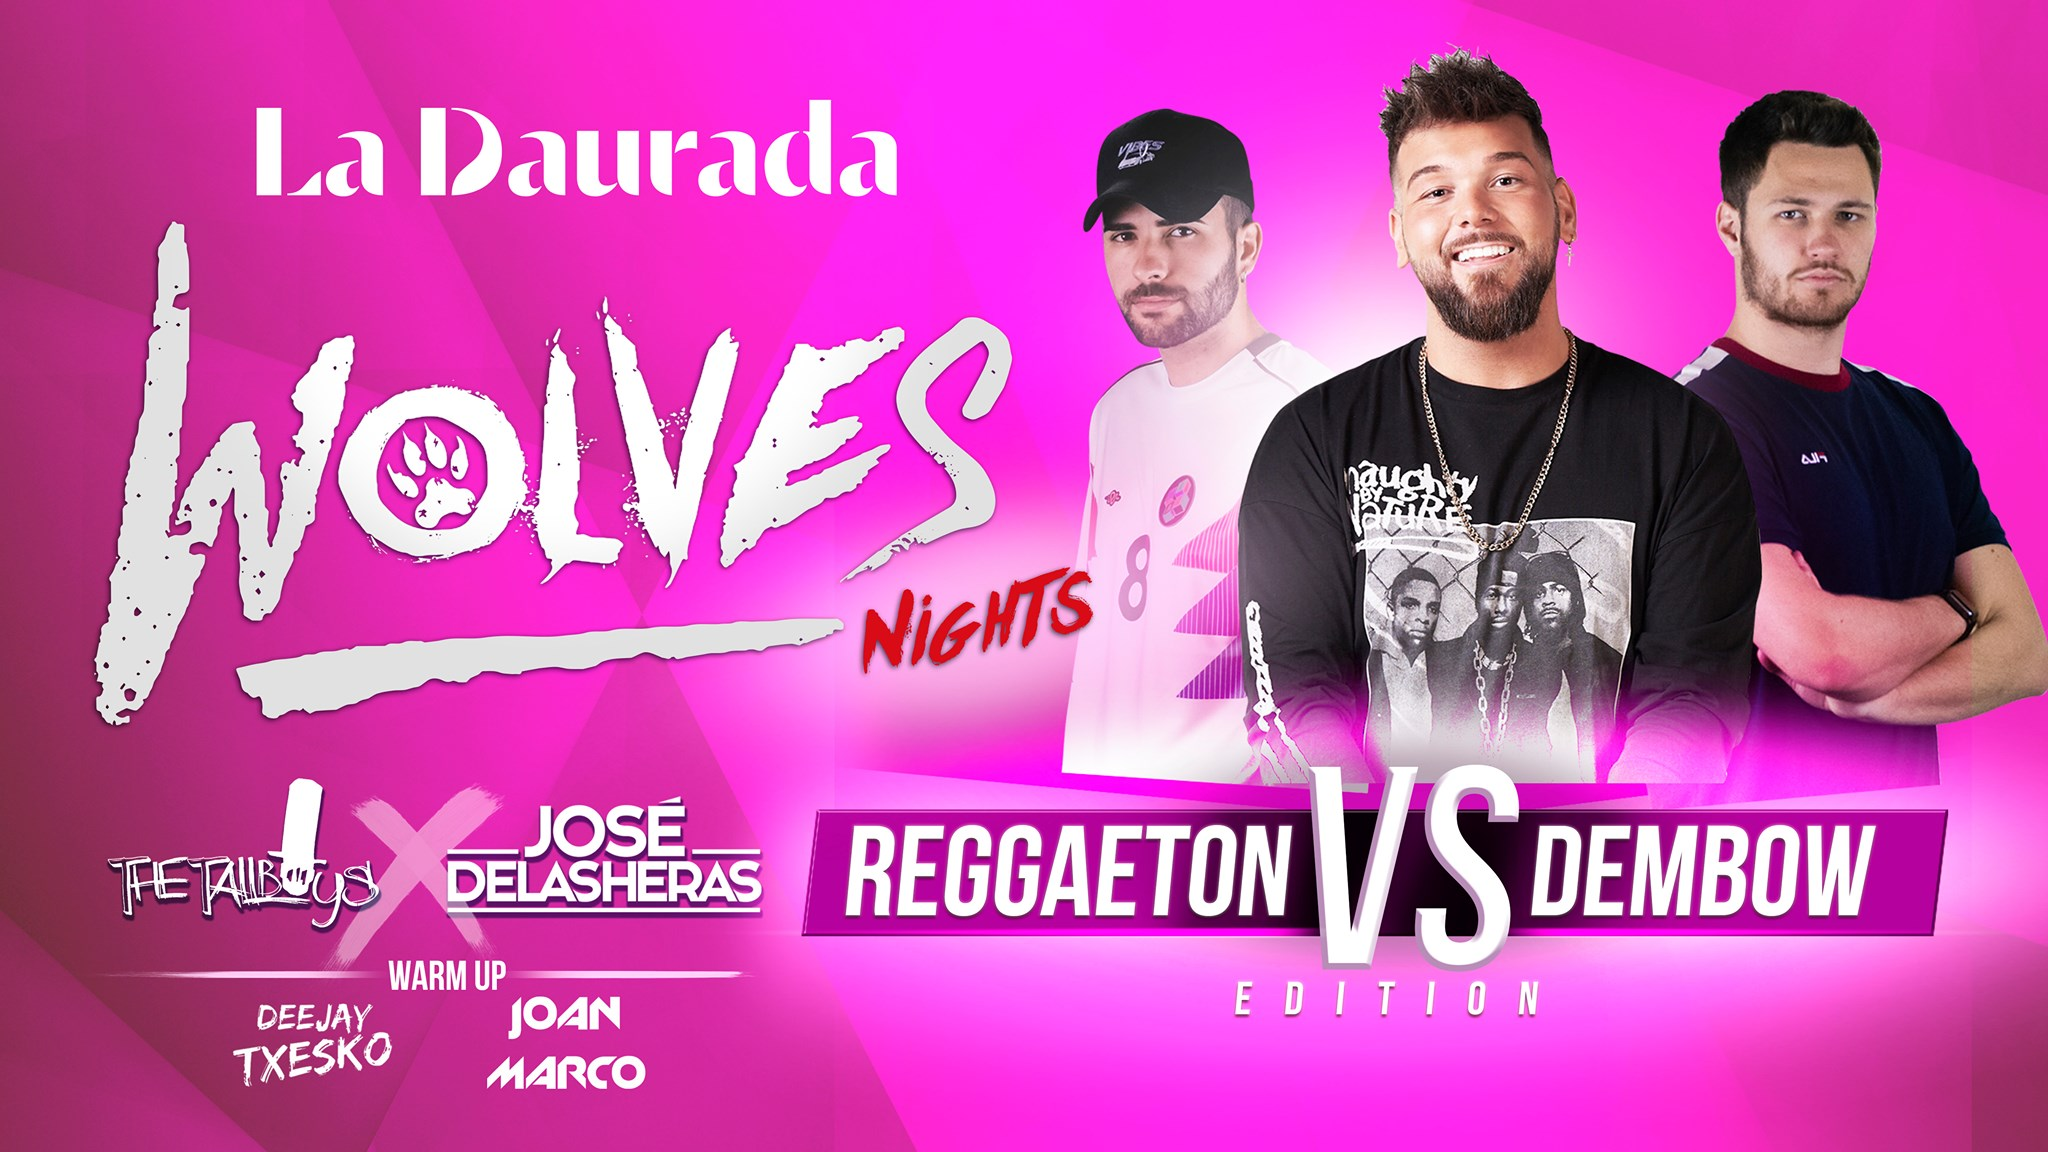 Wolves Nights Special Reggaeton vs Dembow